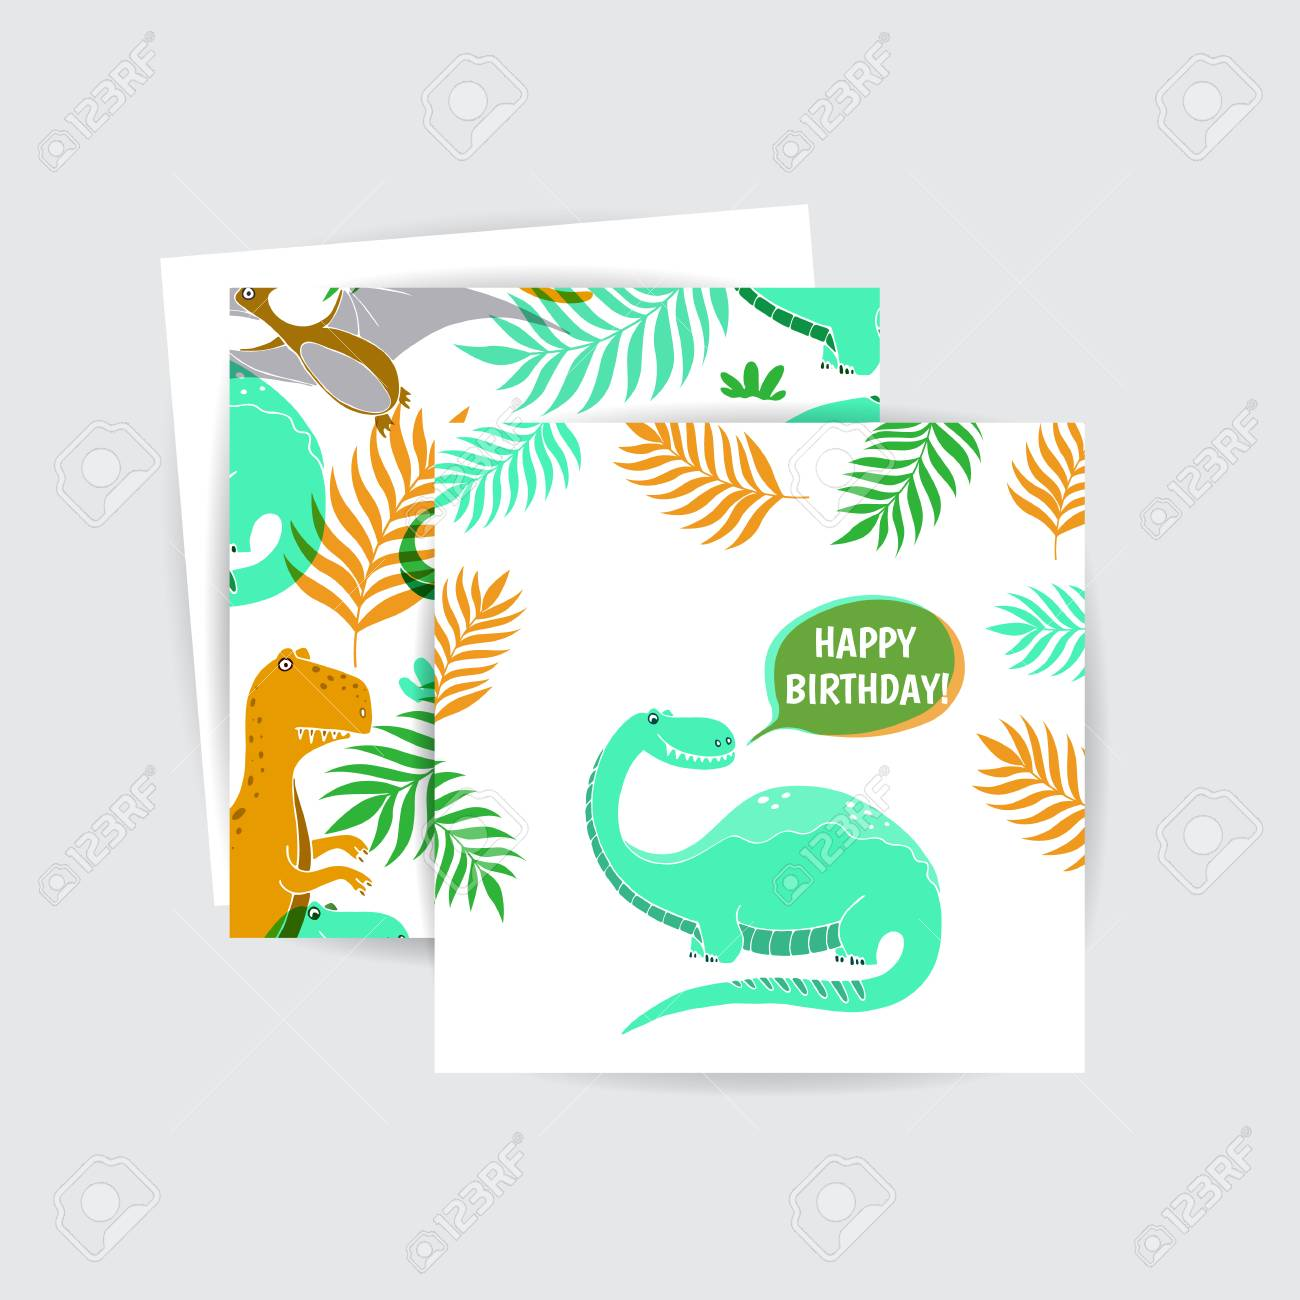 Vector Happy Birthday - Card With Funny Dinosaurs And Seamless ...